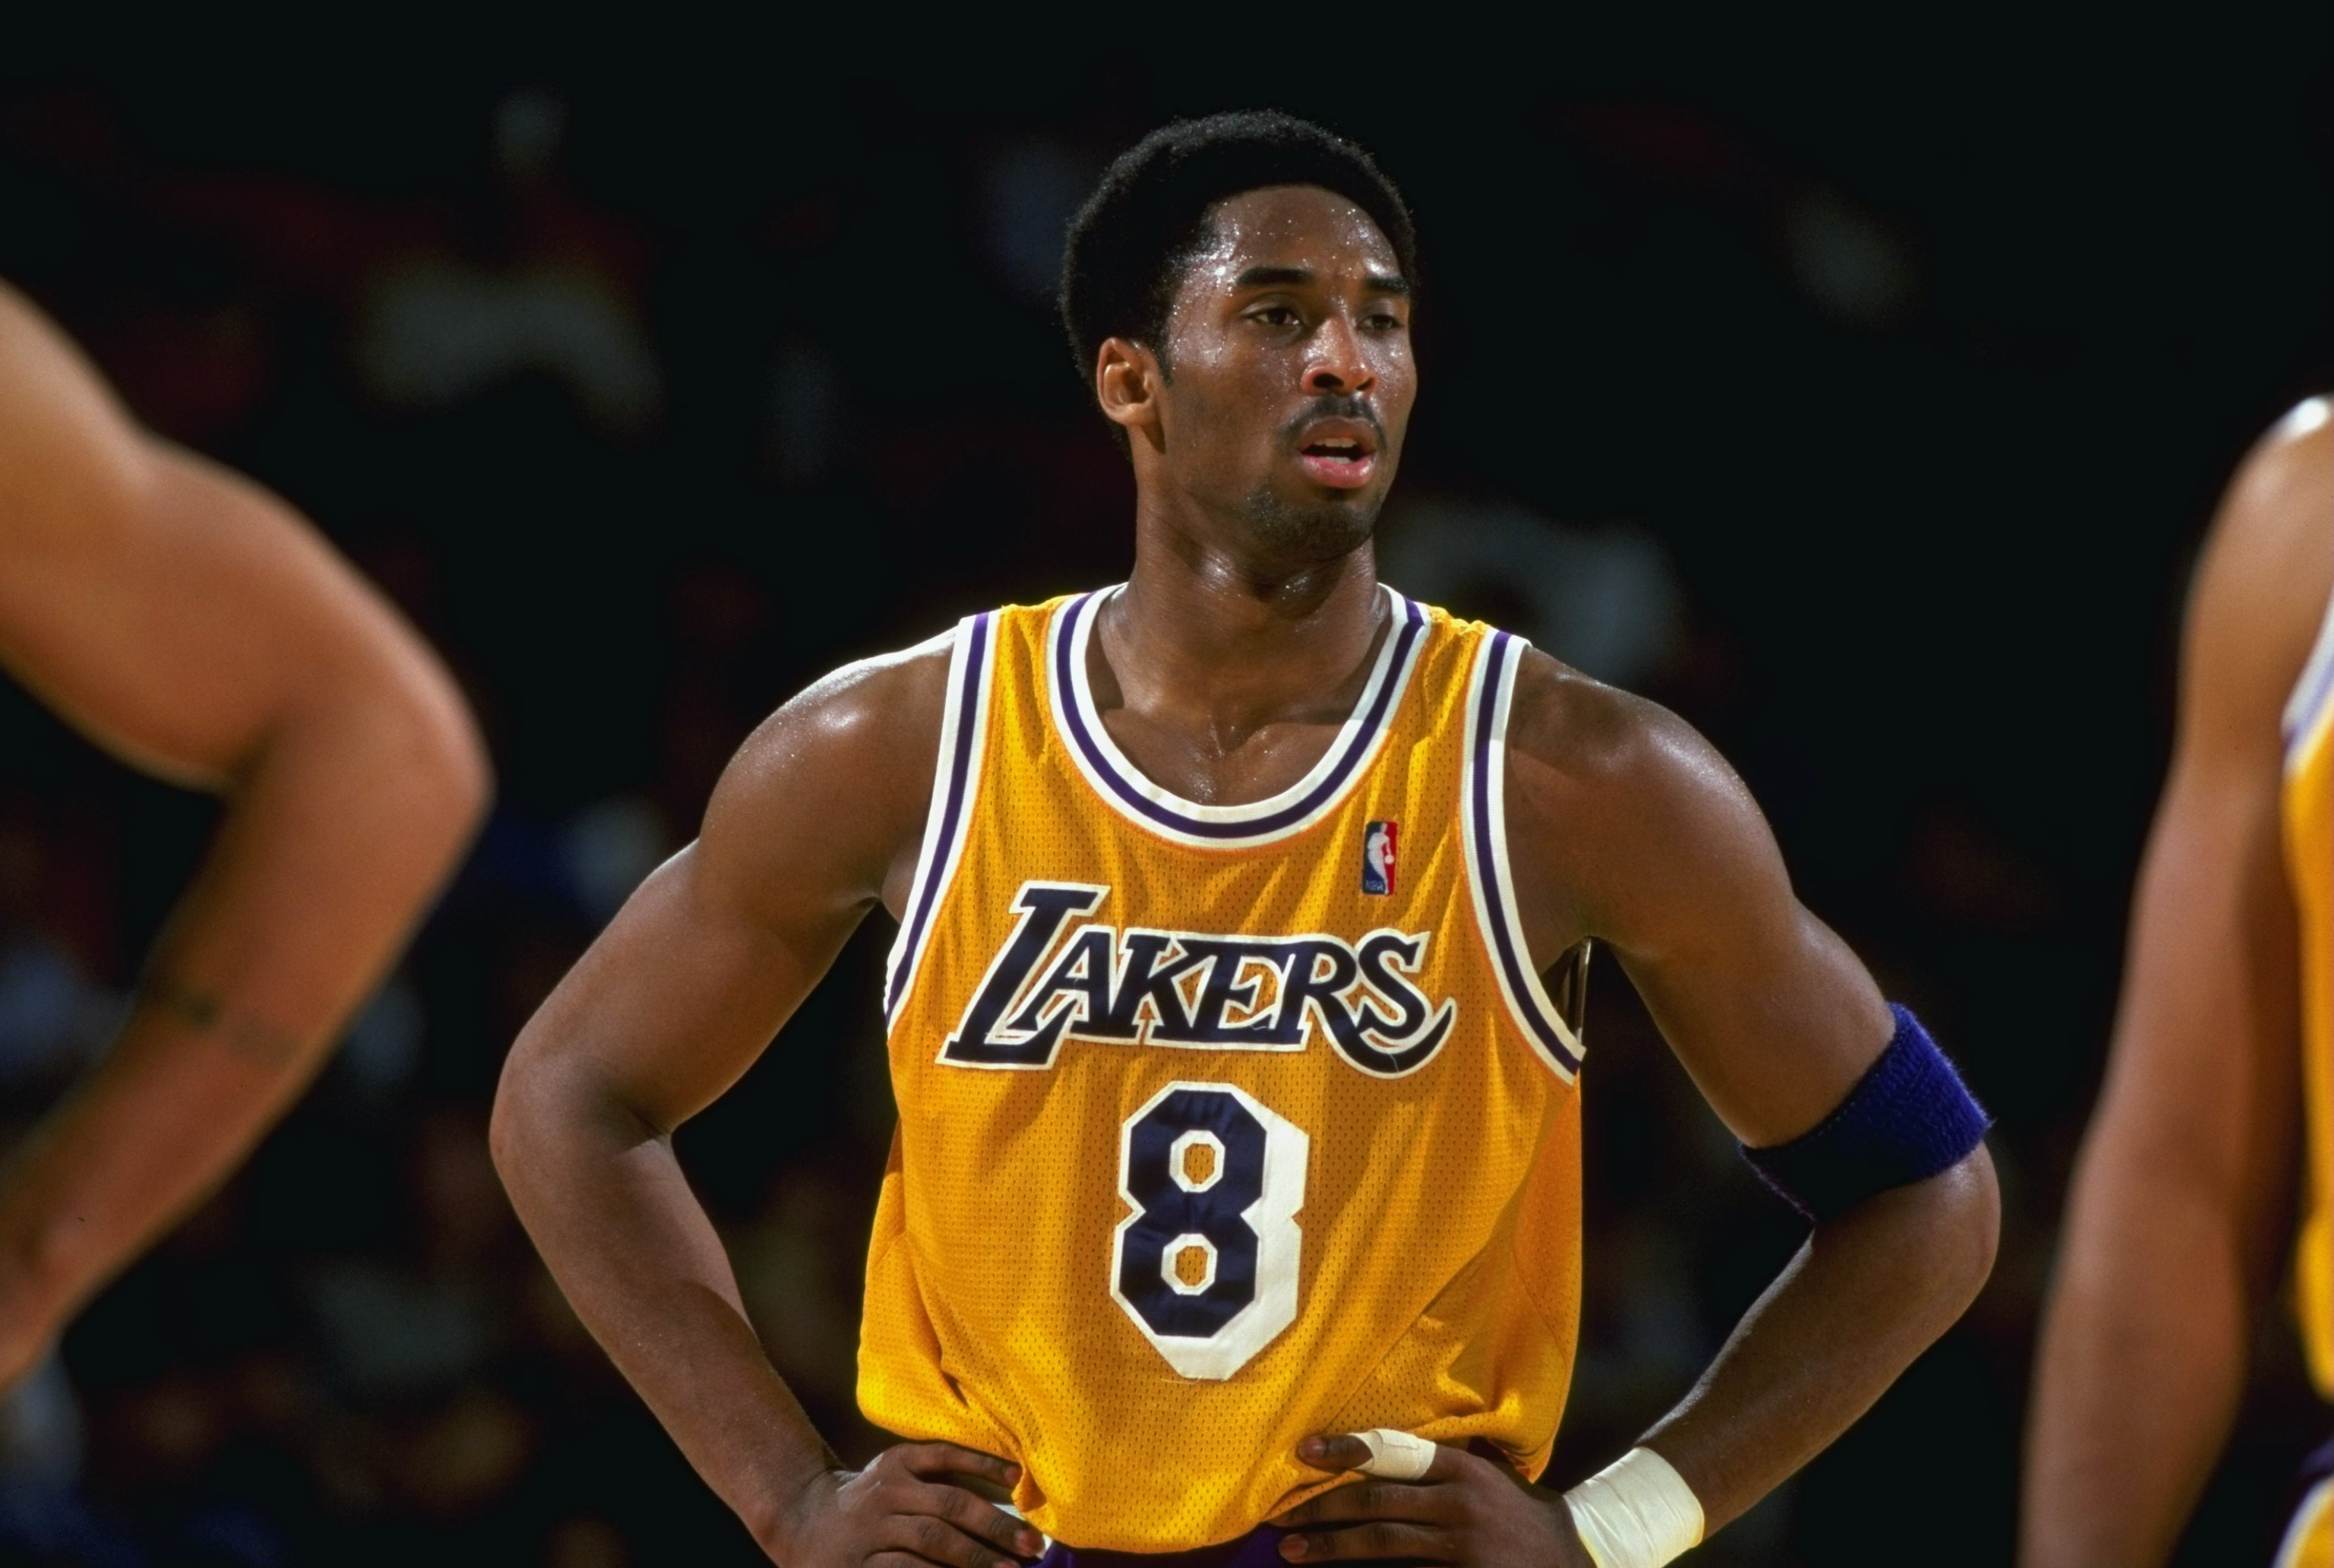 new styles 47779 acff7 Lakers To Retire Kobe Bryant's 2 Jersey Numbers In December ...